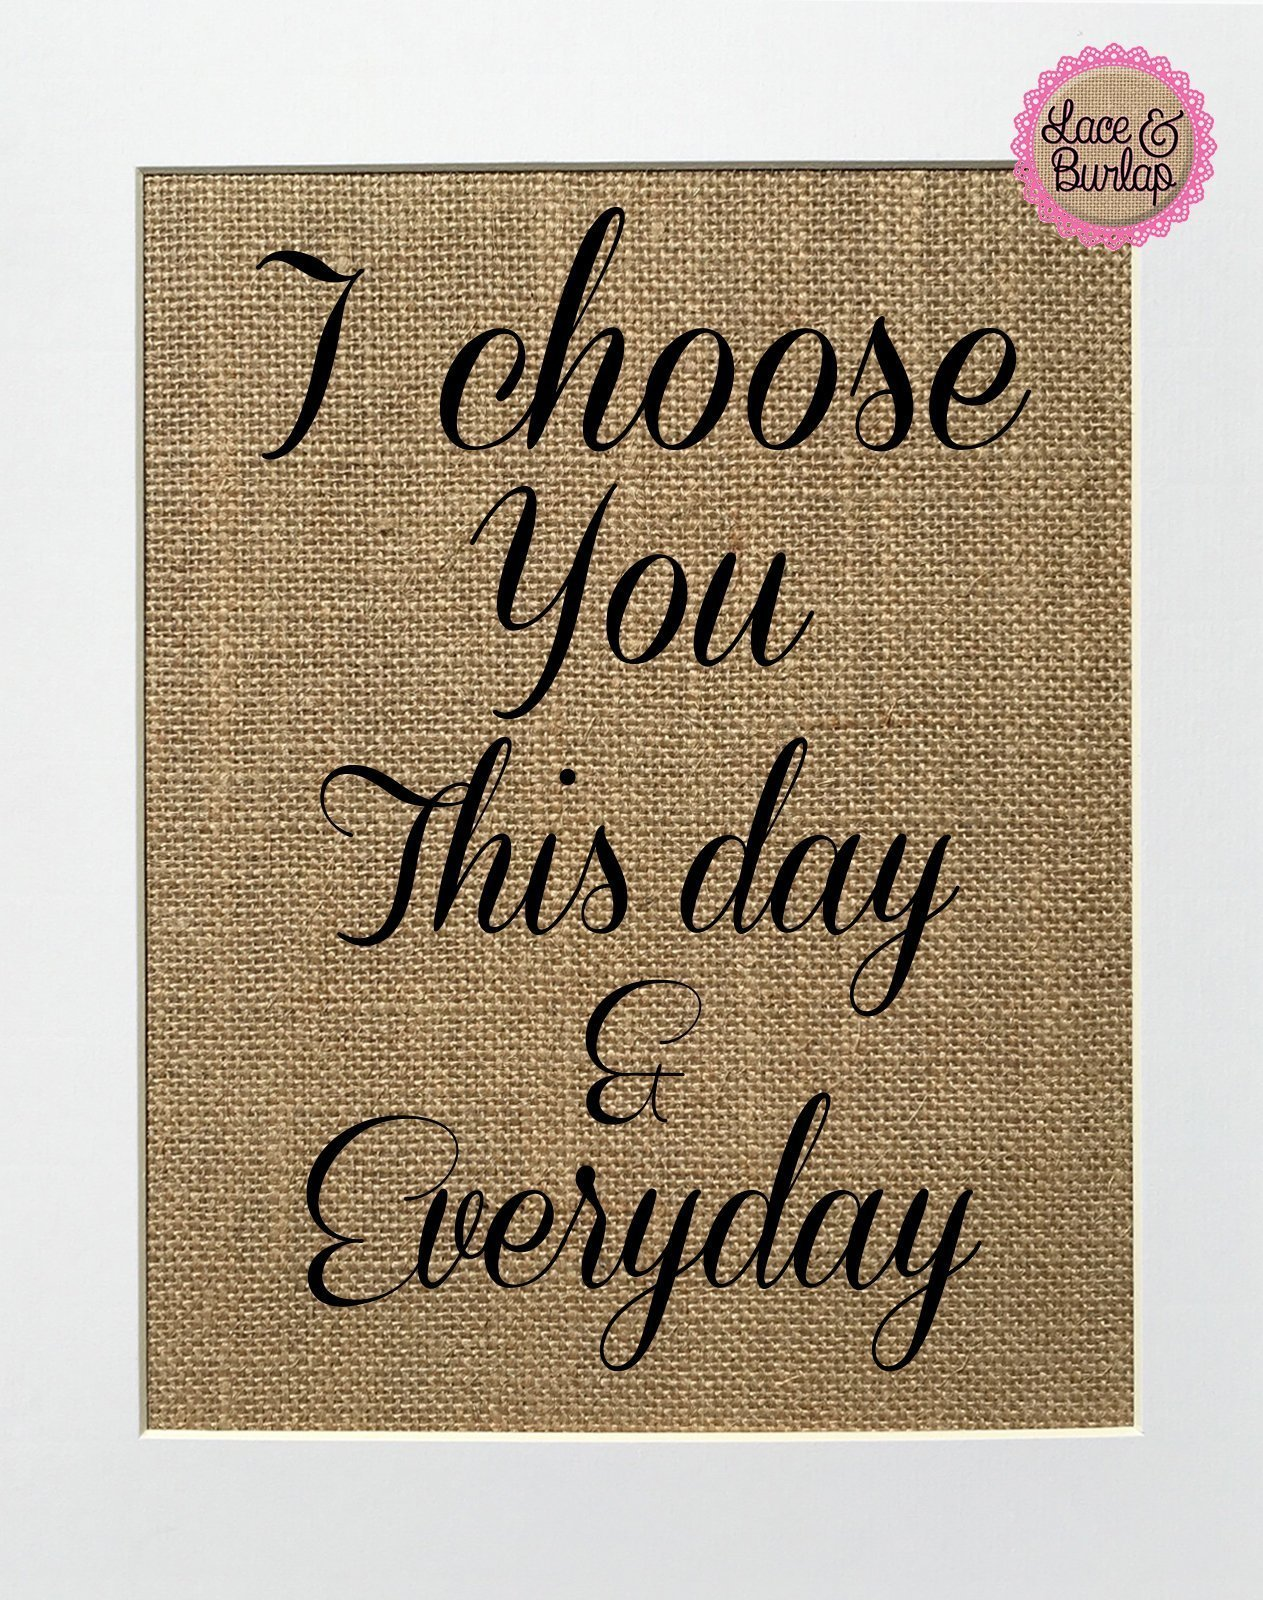 8x10 UNFRAMED I Choose You This Day and Everyday / Burlap Print Sign / Love Wedding Day Anniversary Gift Rustic Shabby Chic Vintage Style Wall Decor